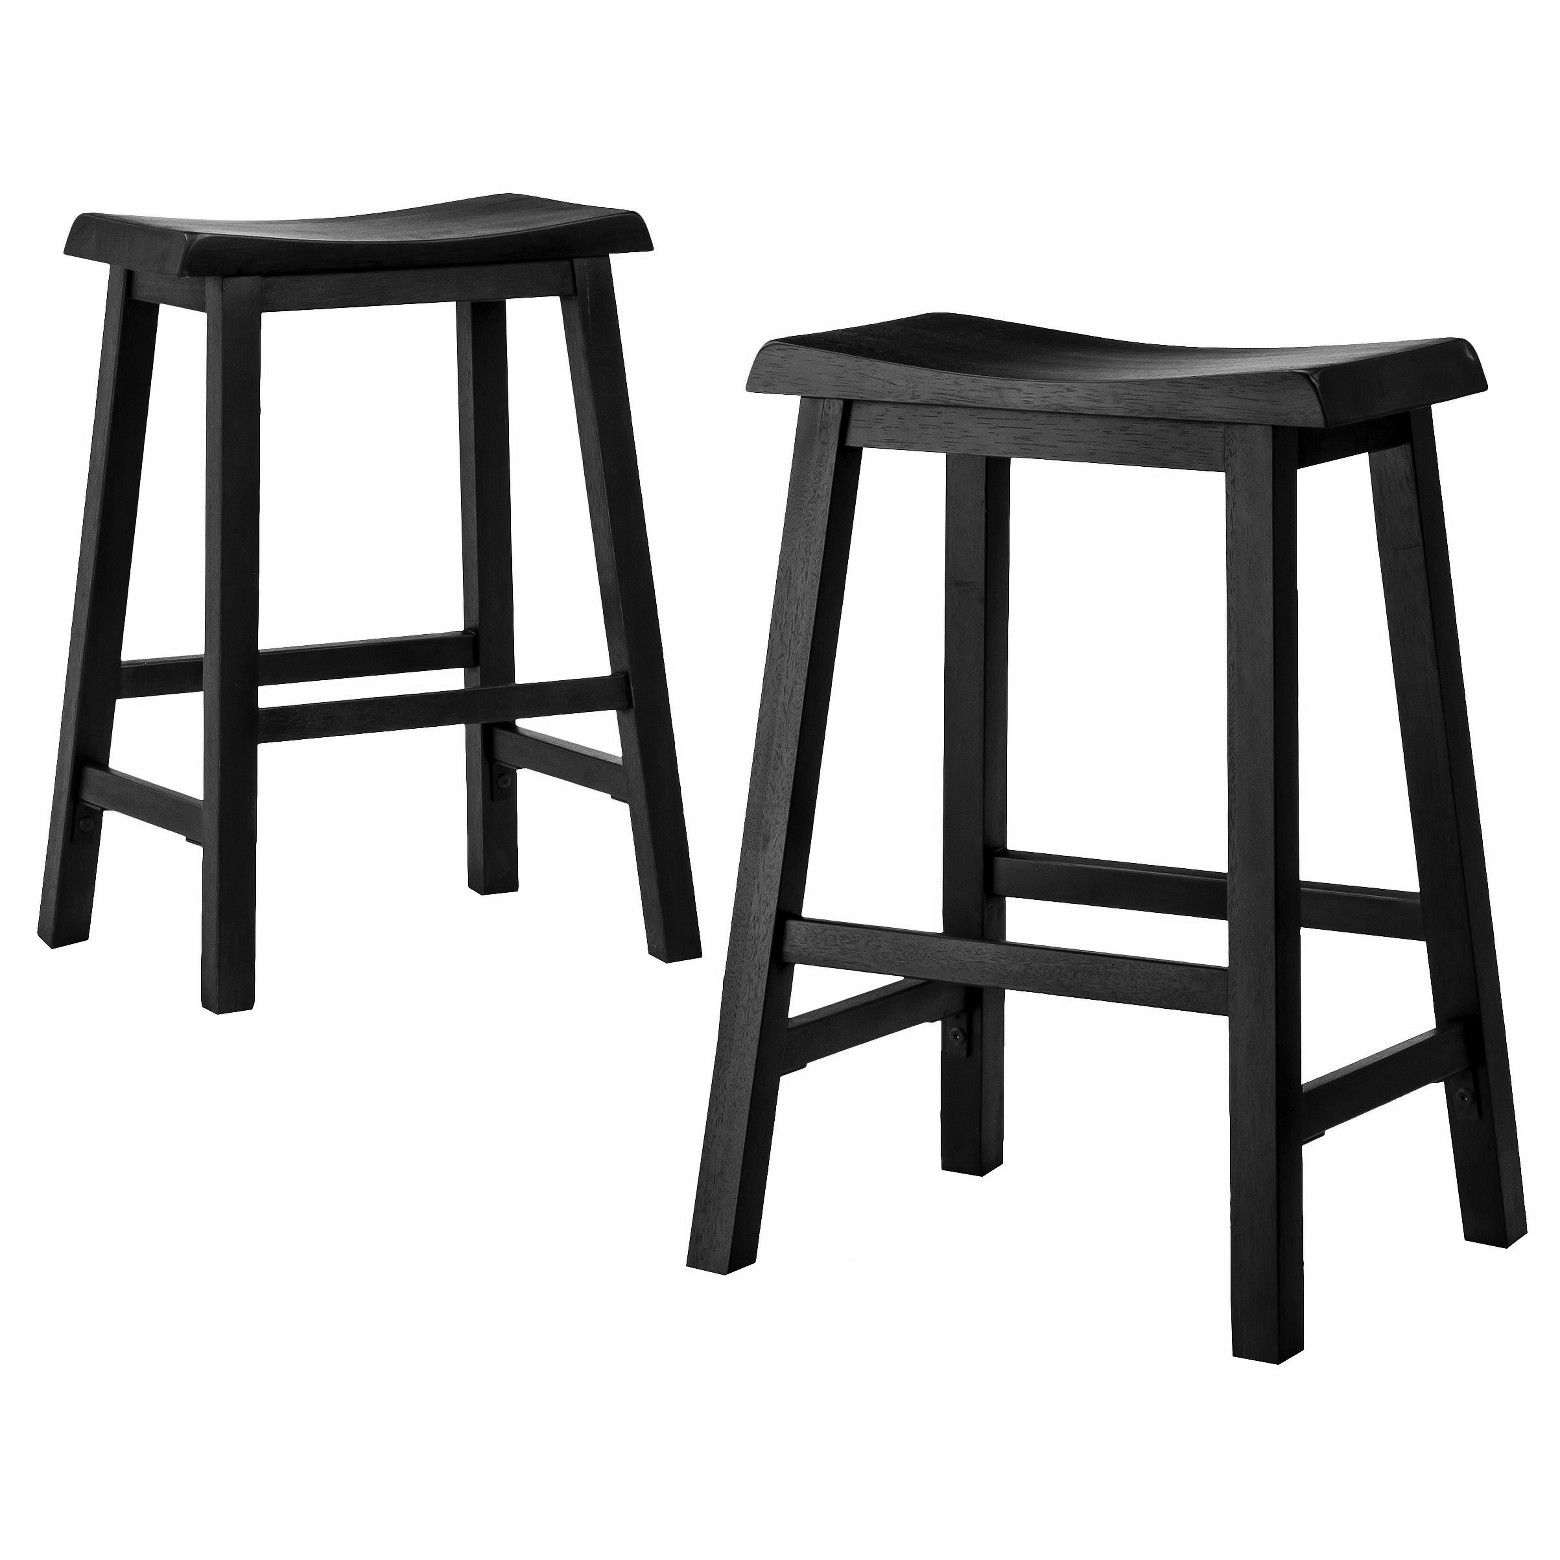 24 Trenton Counter Stool Threshold 24 Counter Stools Counter Stools Saddle Seat Bar Stool